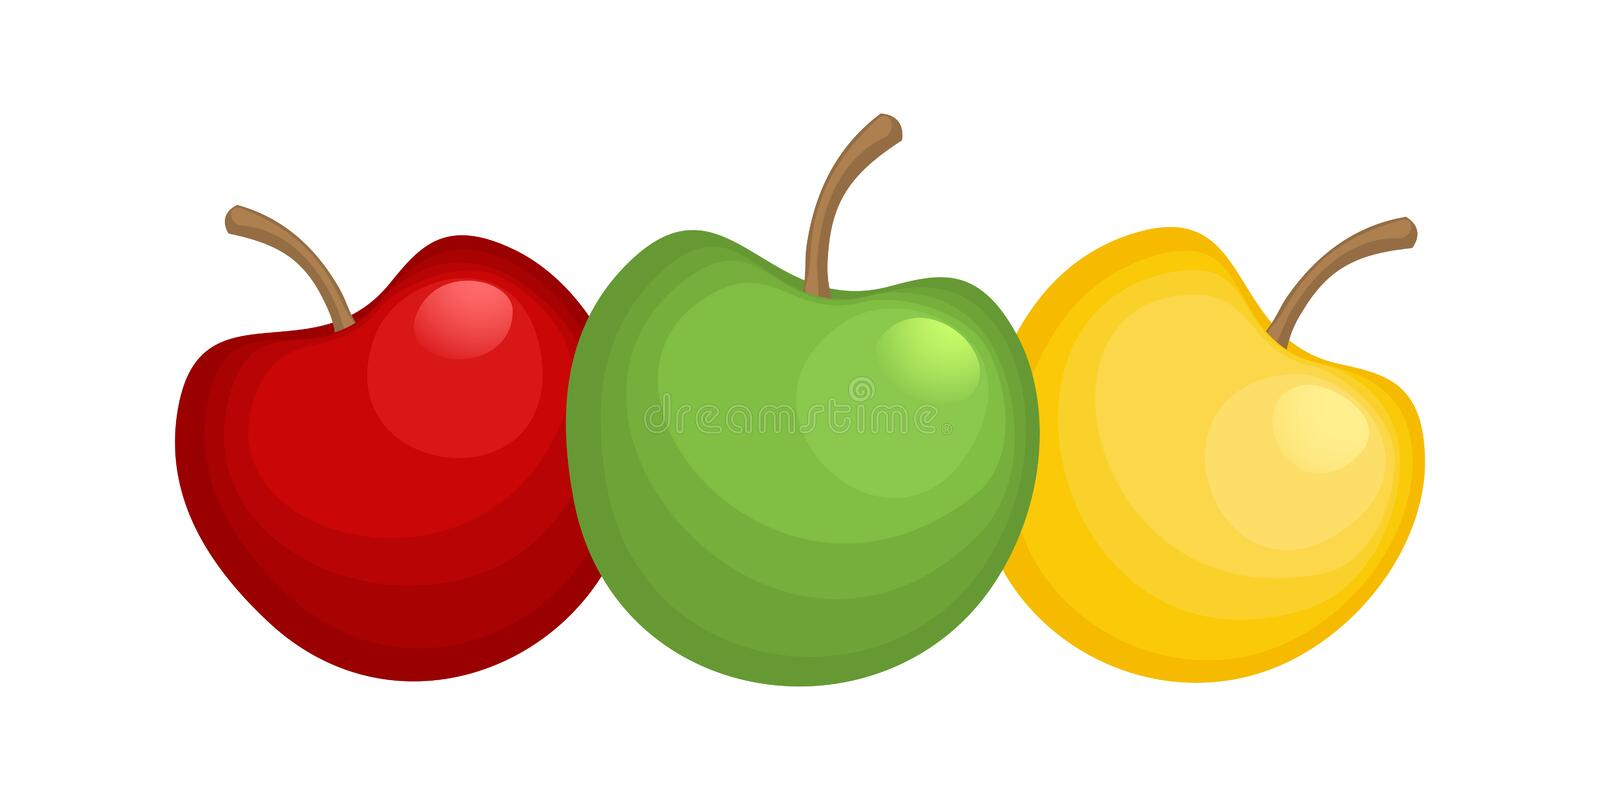 Three sweet apples. Red, green and yellow fruits. Symbol of healthy food. Vector illustration stock illustration